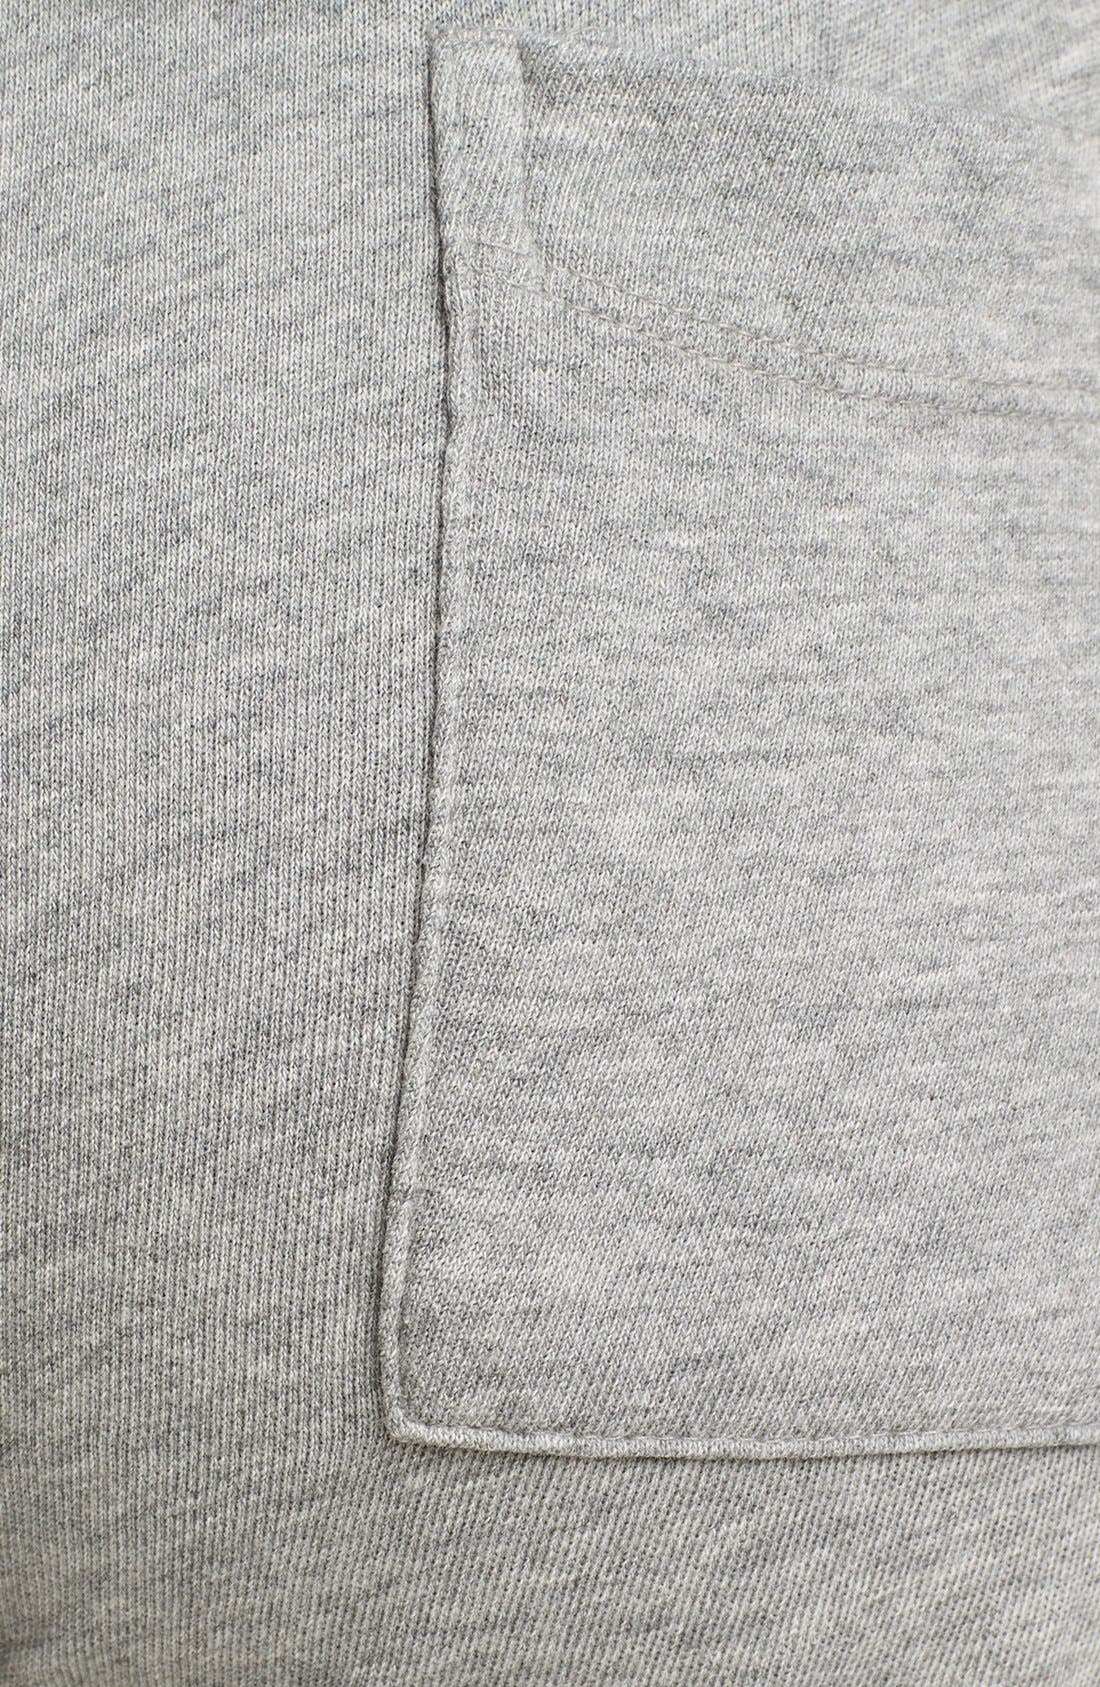 Classic Sweatpants,                             Alternate thumbnail 3, color,                             Heather Grey